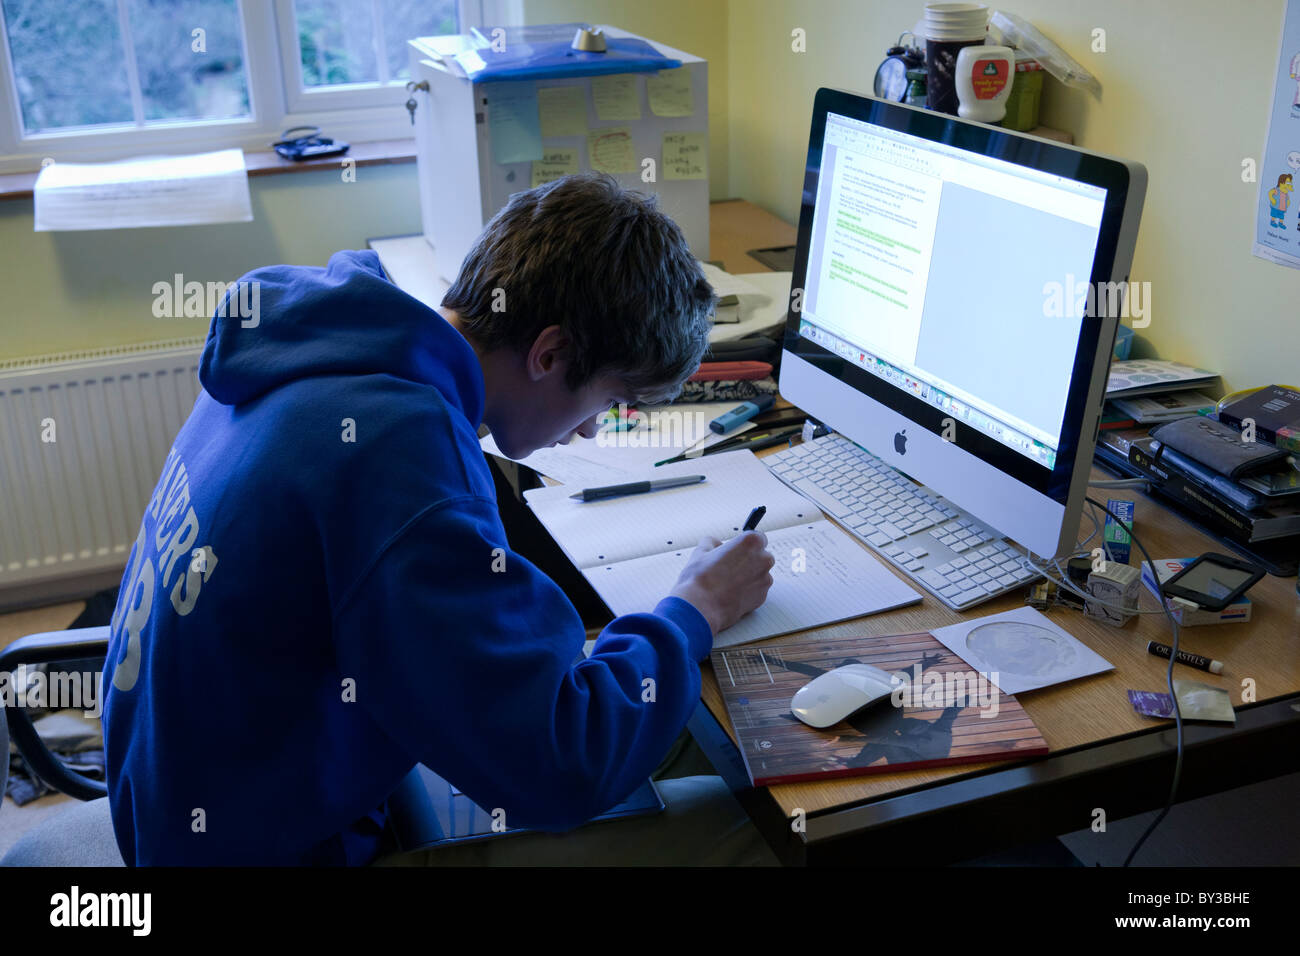 Stock Photo   Student Writing In His Bedroom With A Messy Desk And An Imac